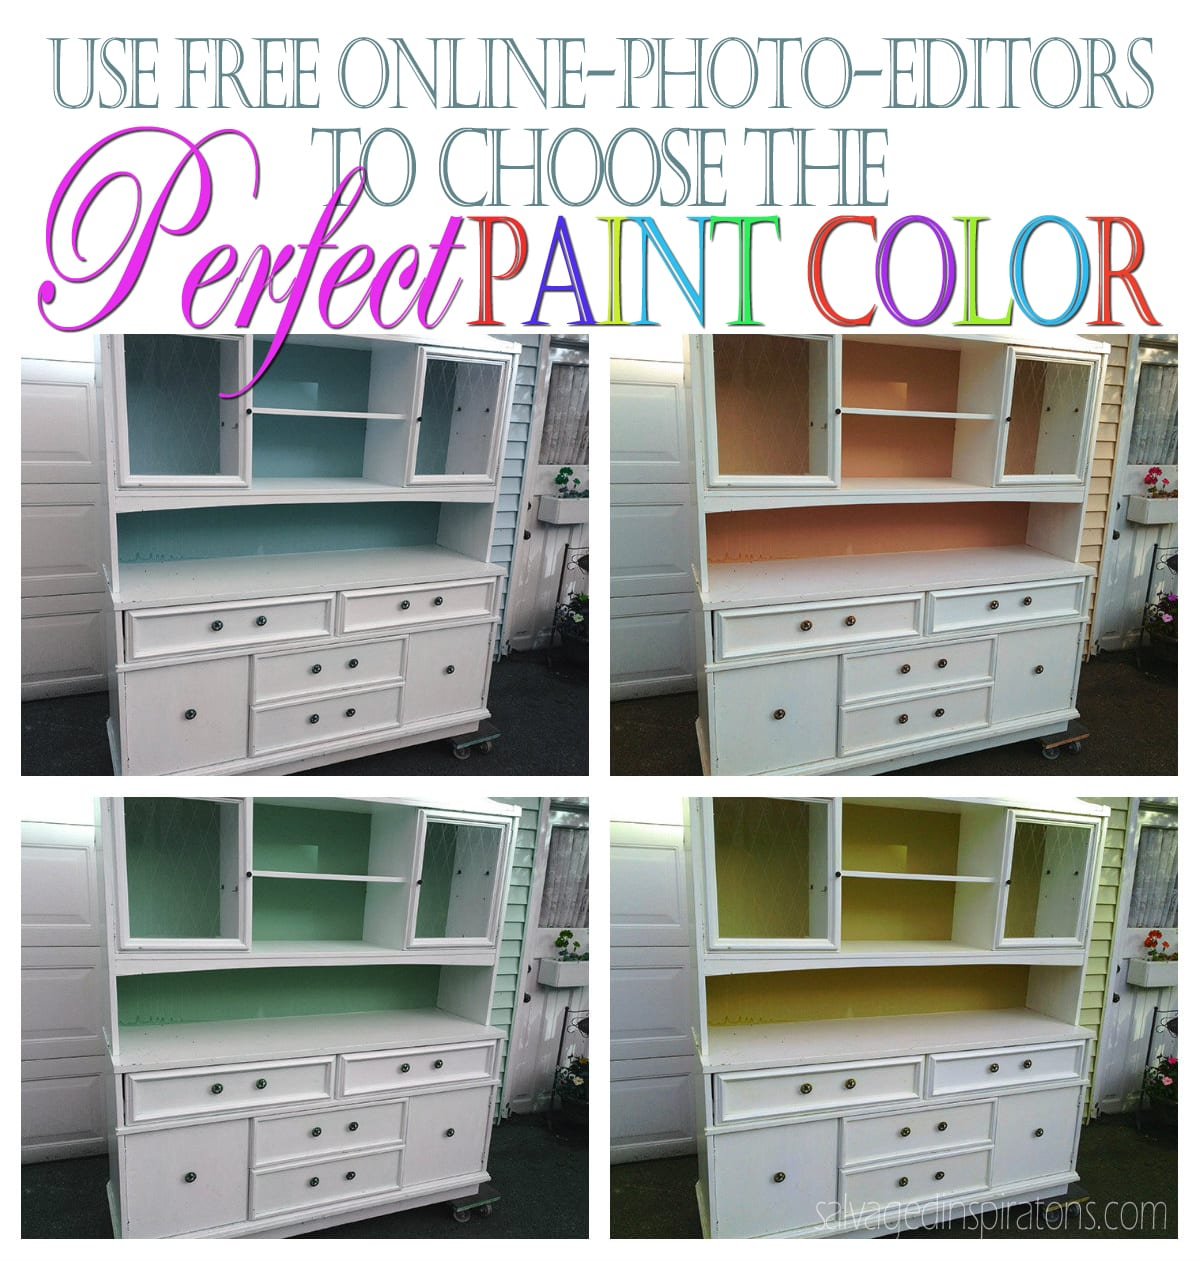 Free-Online-Editors-4-Picking-Paint-Colors